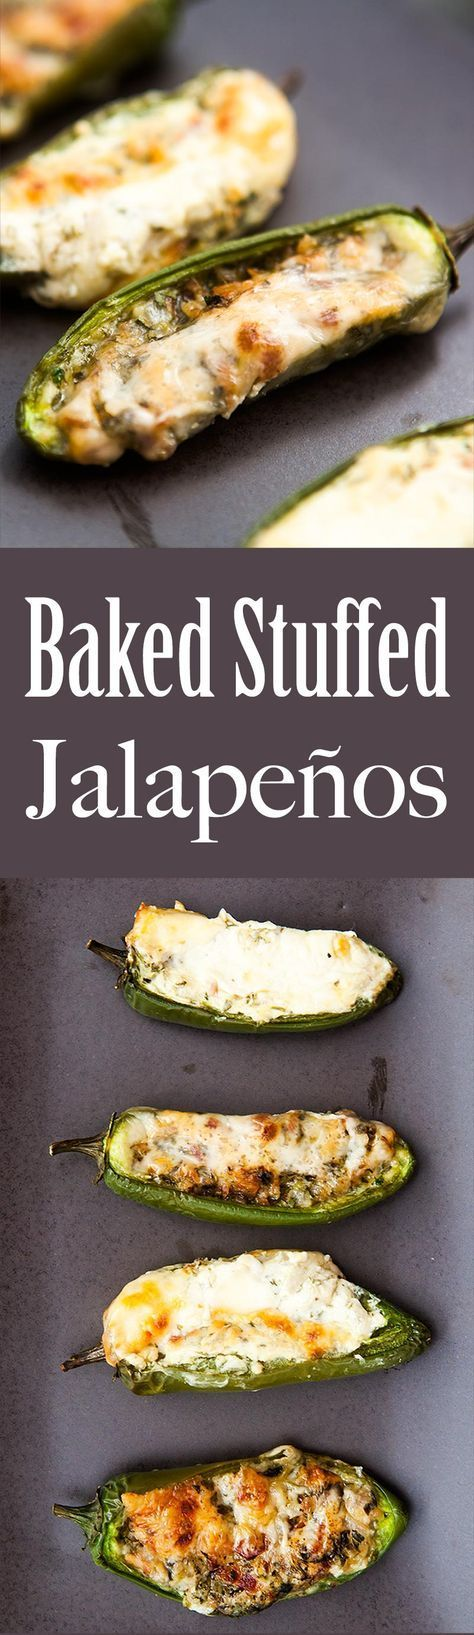 Baked Stuffed Jalapeños! Stuffed with cheese, onions, cilantro and bacon, seasoned with oregano and cumin. Great appetizer for a crowd! On http://SimplyRecipes.com